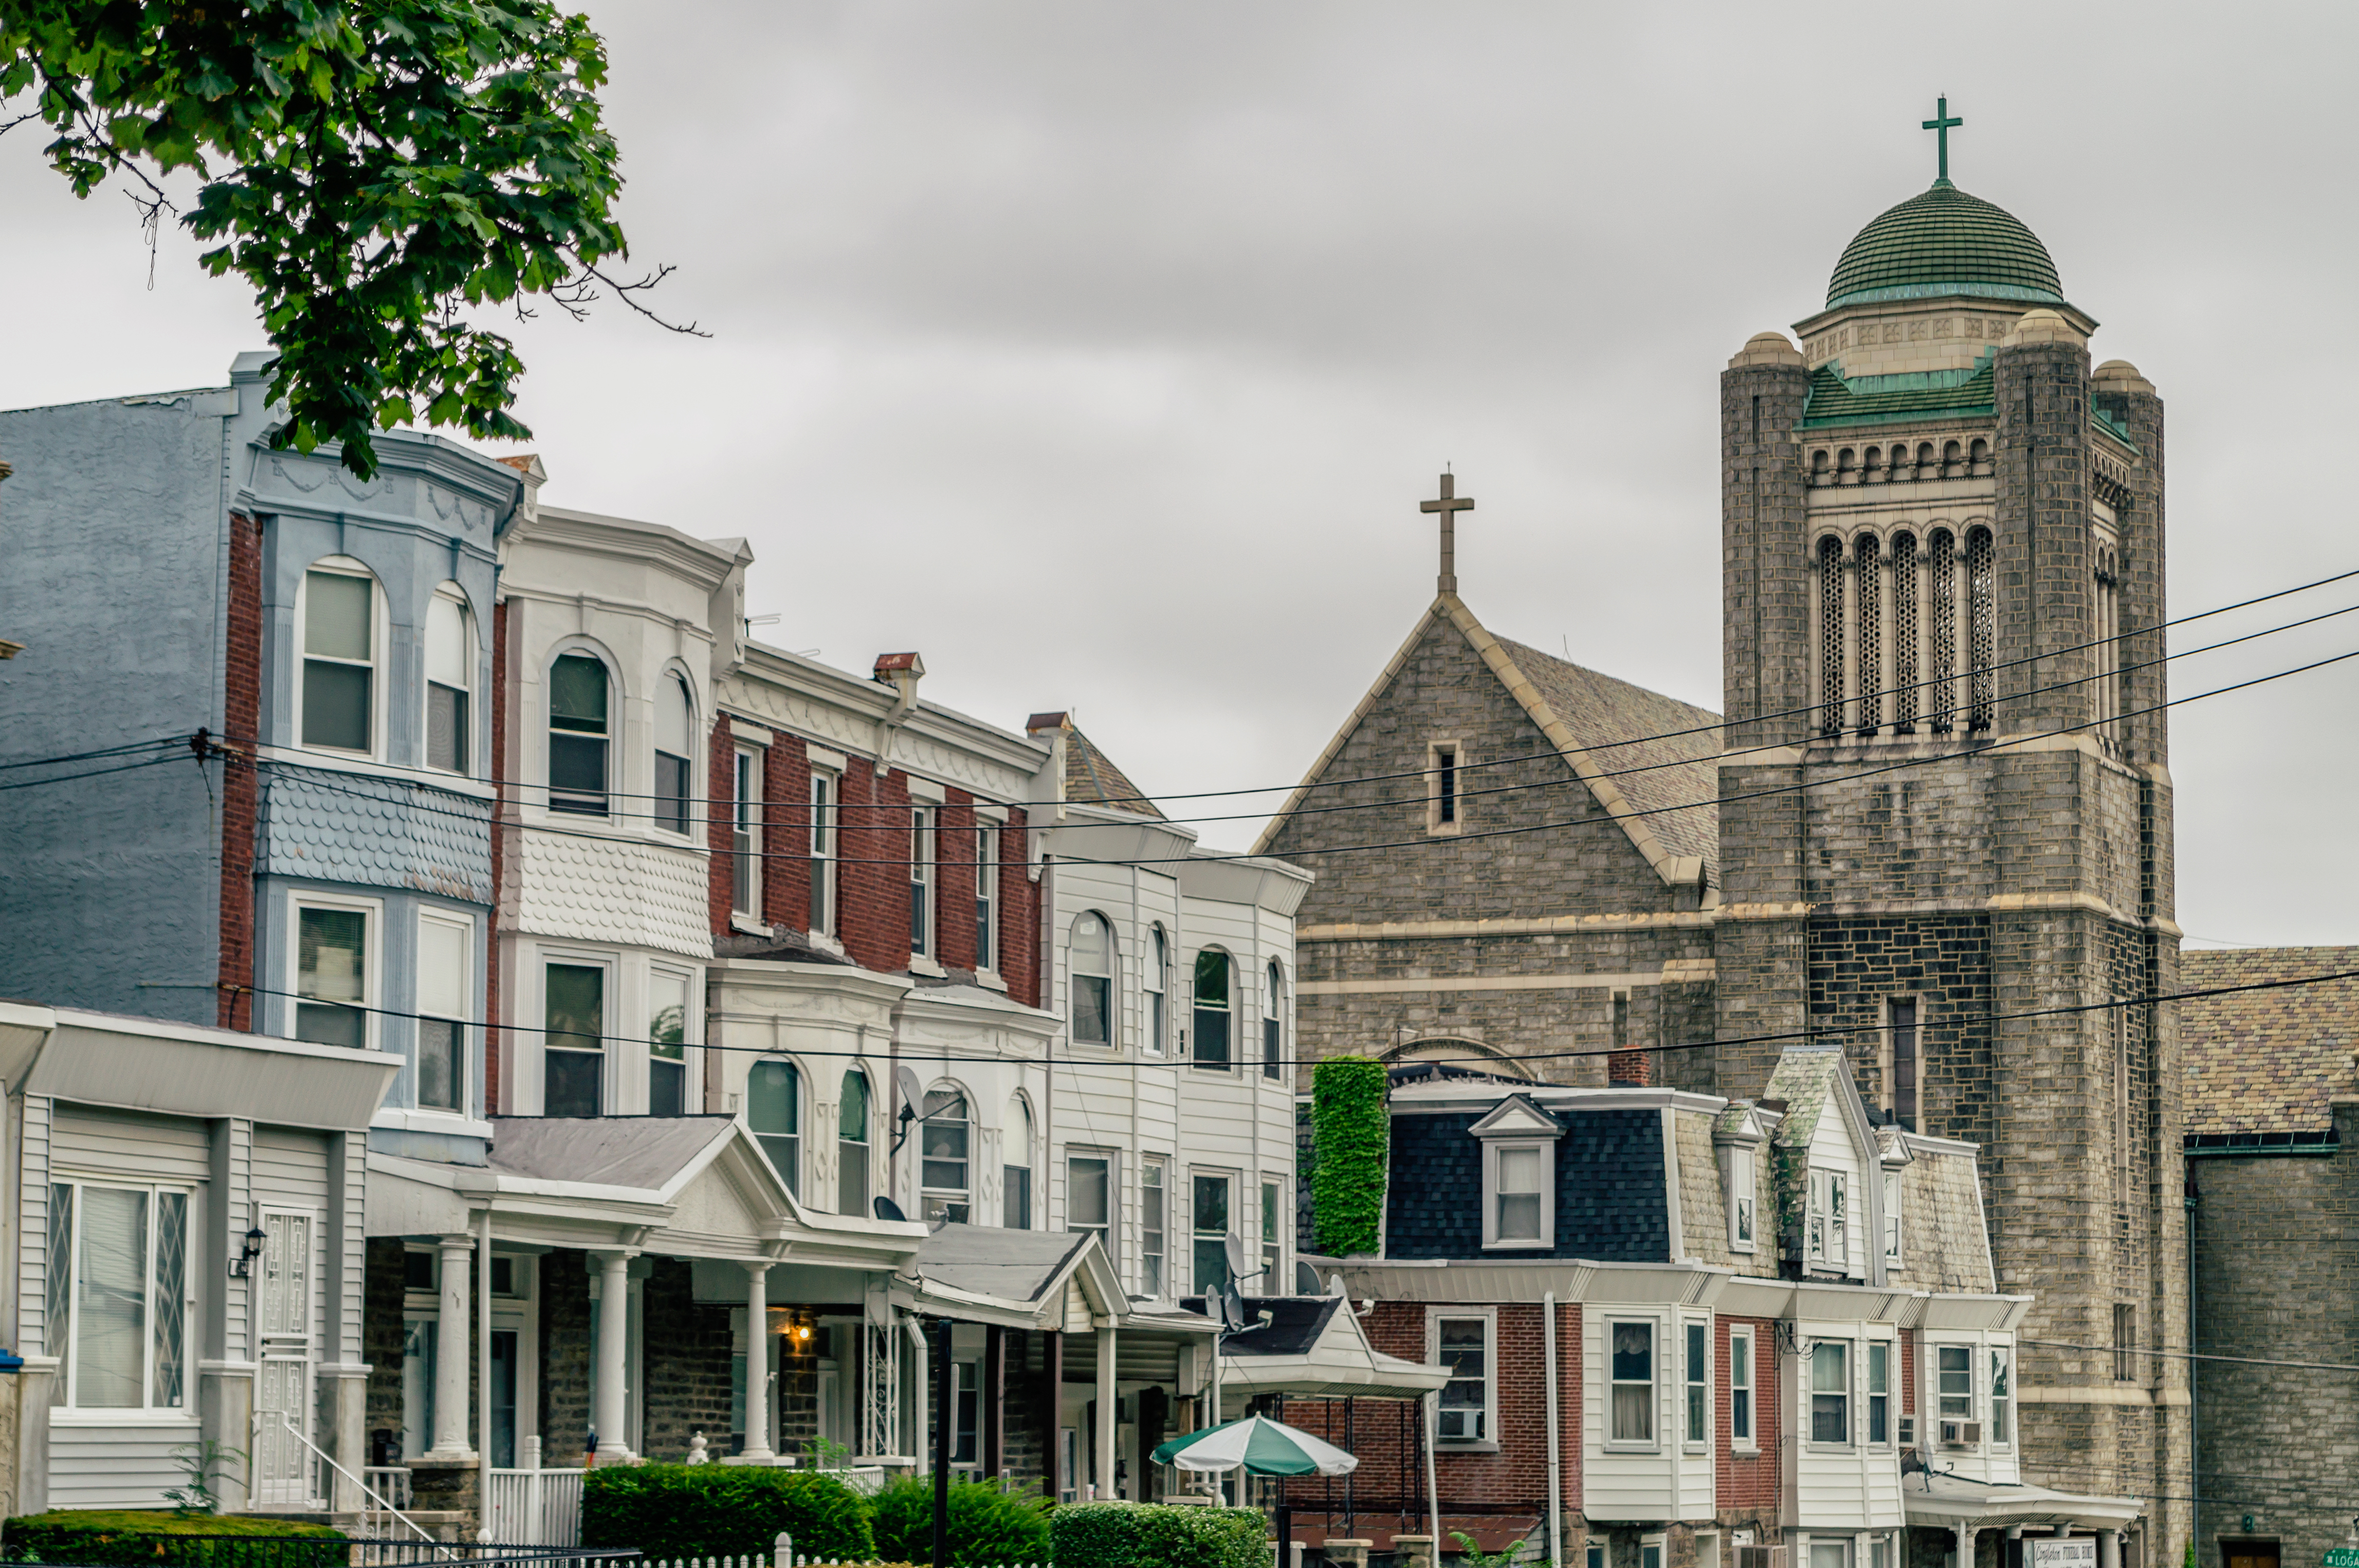 The tops of a rowhomes with a church in the background.